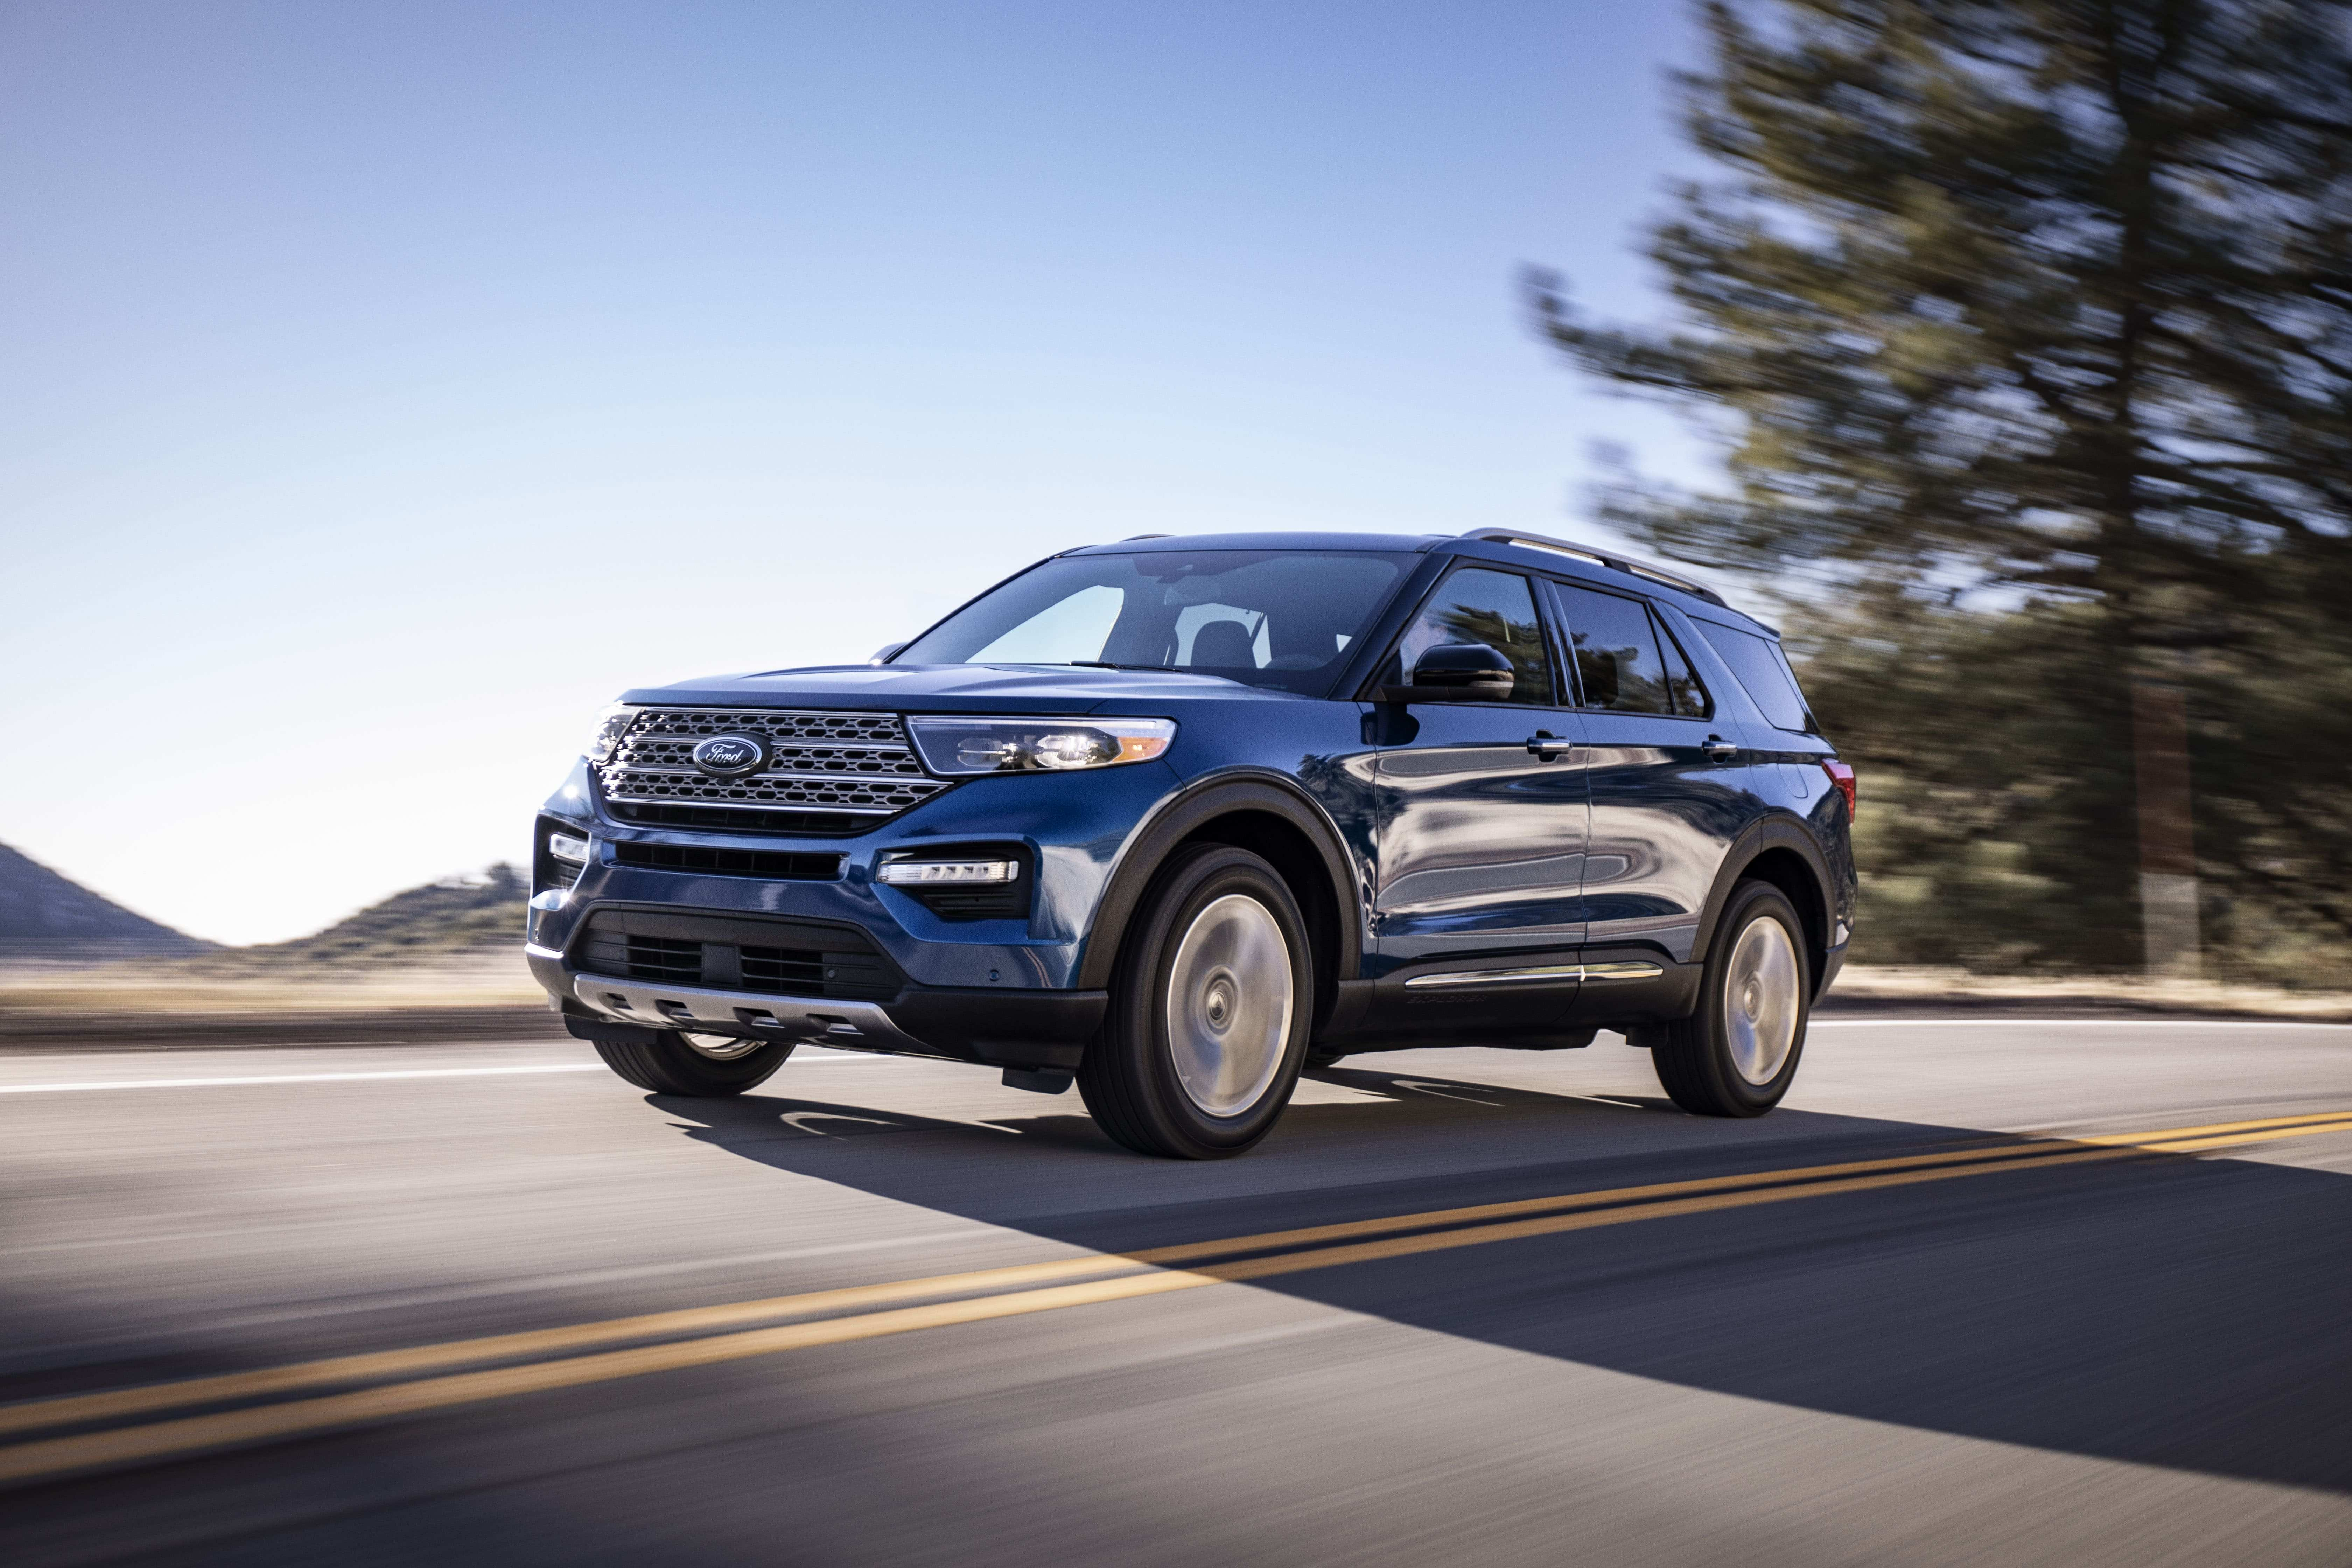 34 All New Ford Explorer 2020 Release Date Specs with Ford Explorer 2020 Release Date